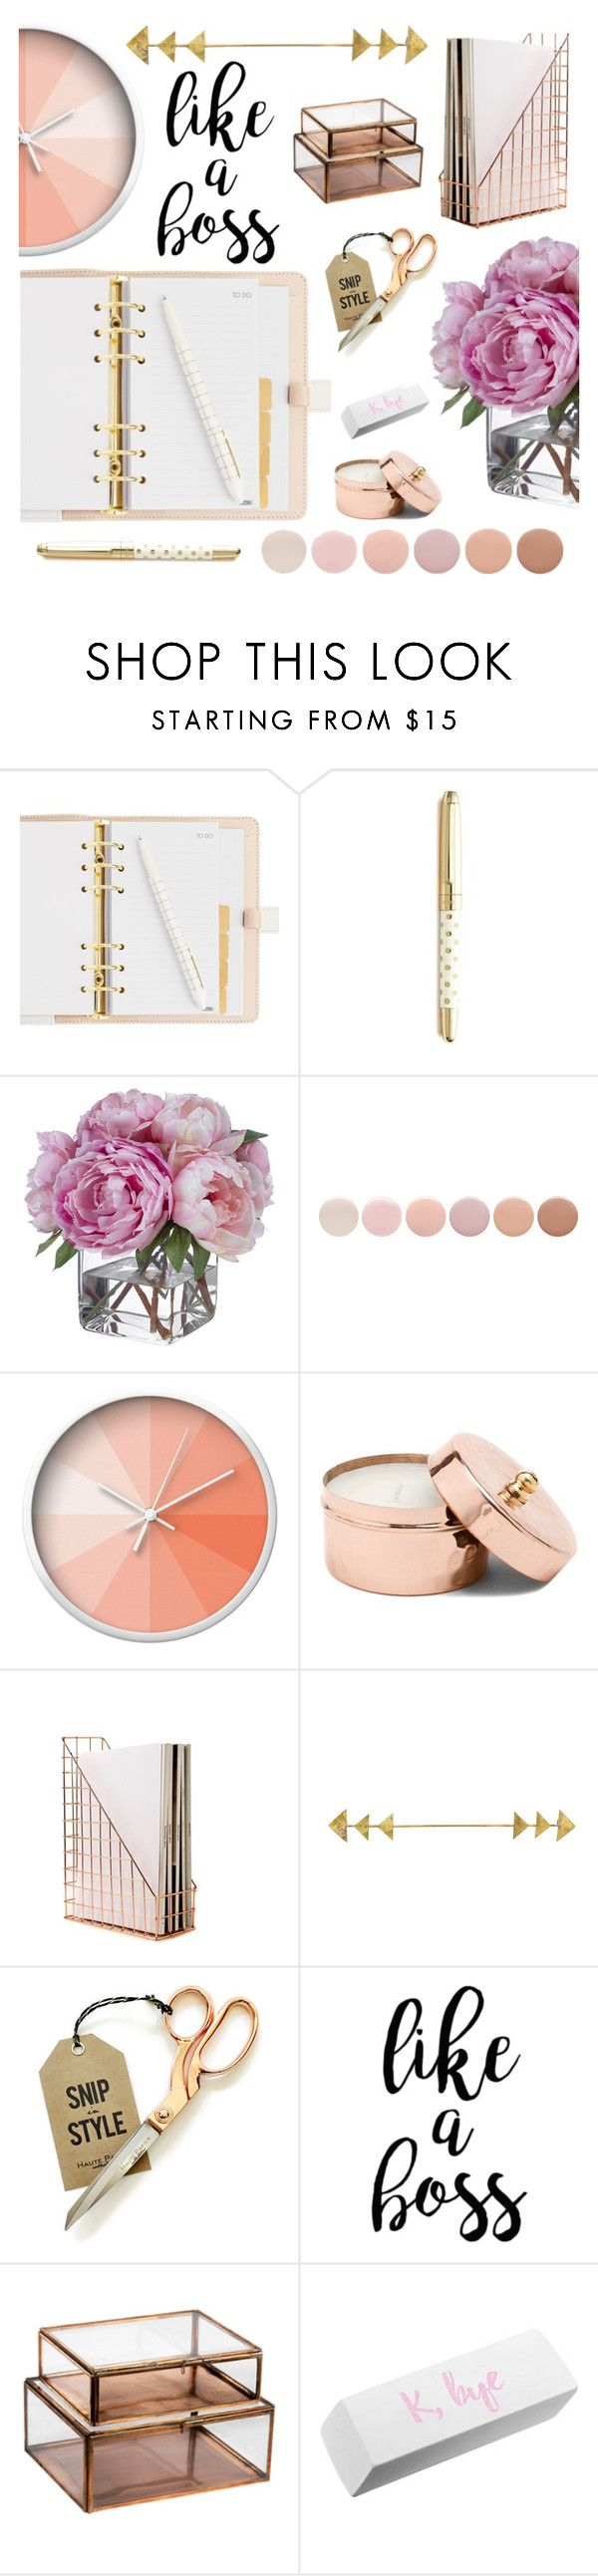 """""""like a boss >>>"""" by southernpearldesigns ❤ liked on Polyvore featuring interior, interiors, interior design, home, home decor, interior decorating, Kate Spade, Diane James, Deborah Lippmann and Dot & Bo"""